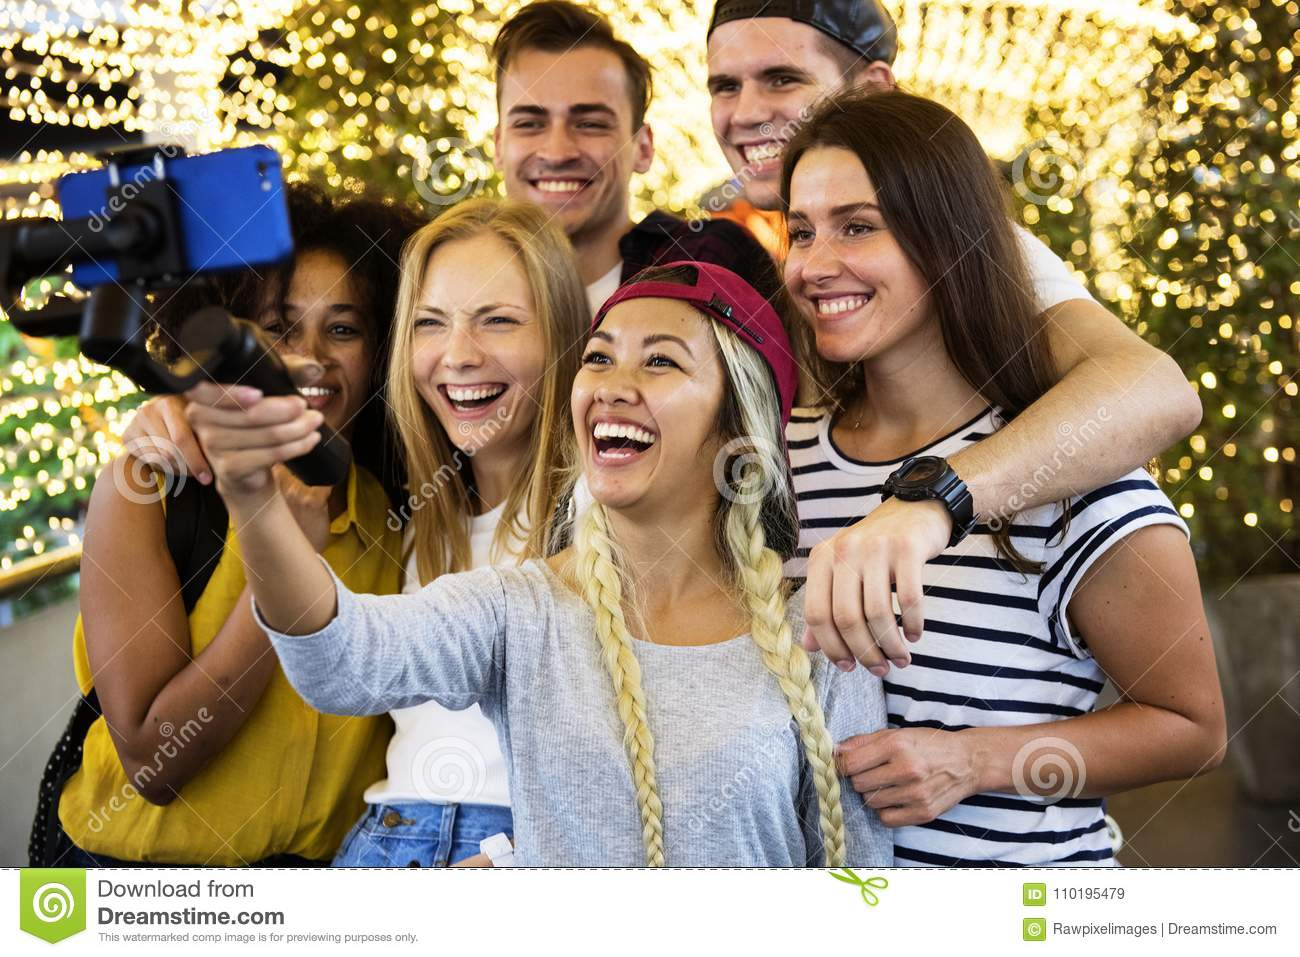 Group of young adult friends taking a group selfie with a selfie